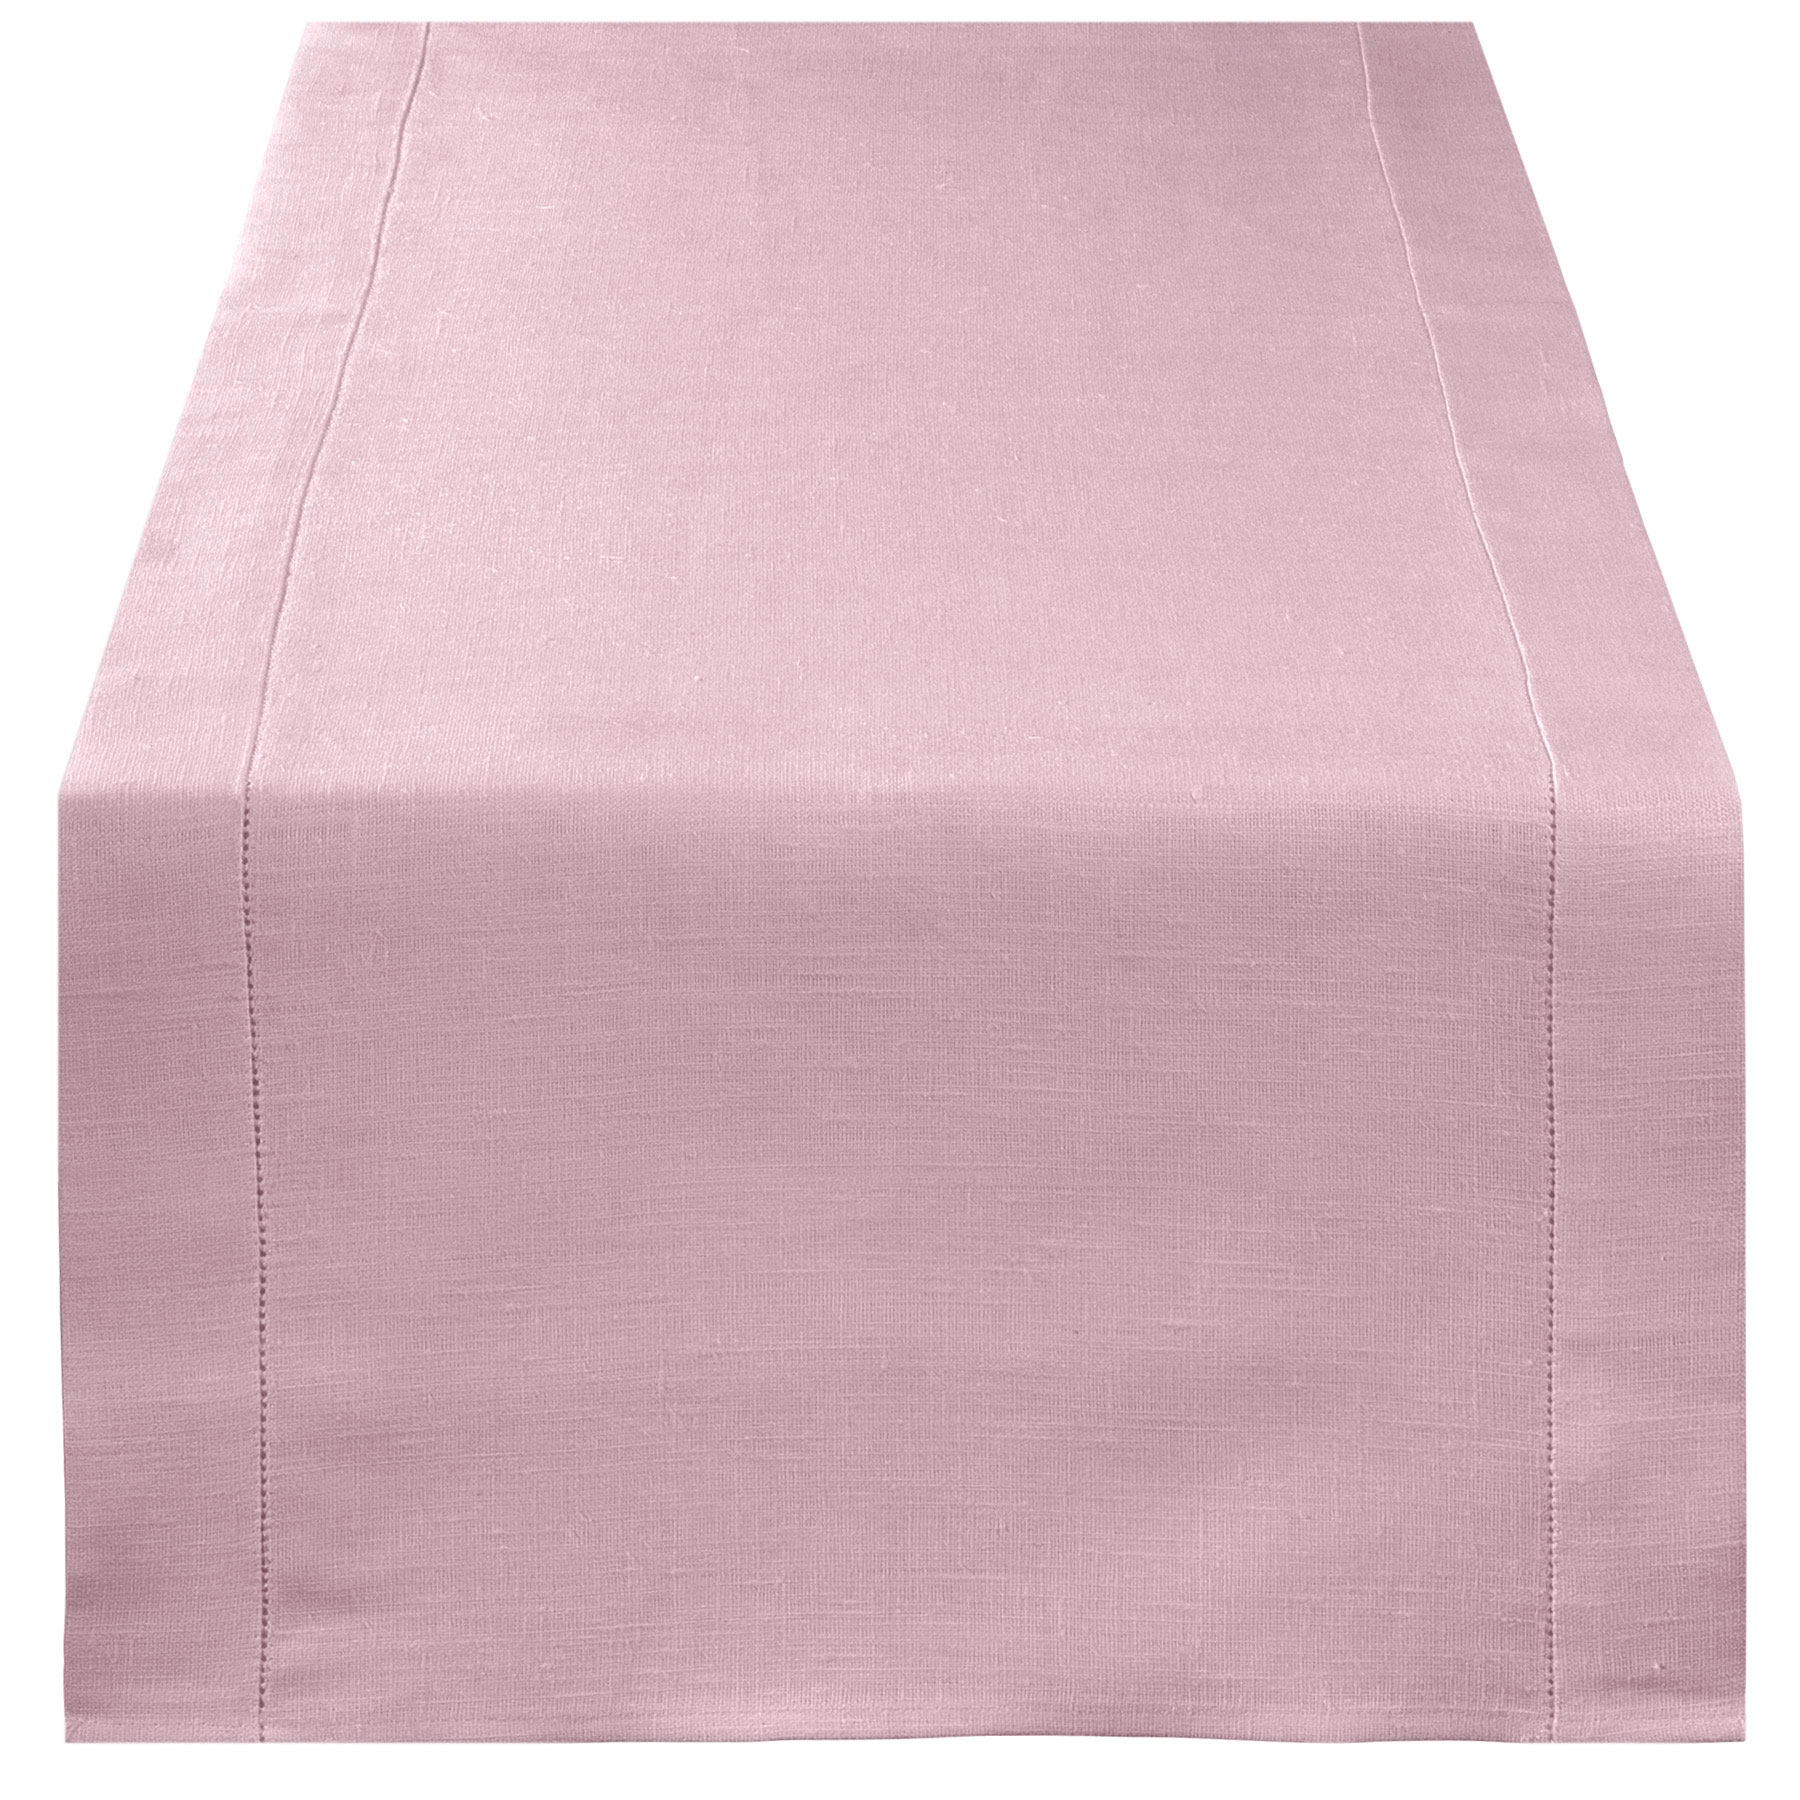 TABLE RUNNER <br />pink